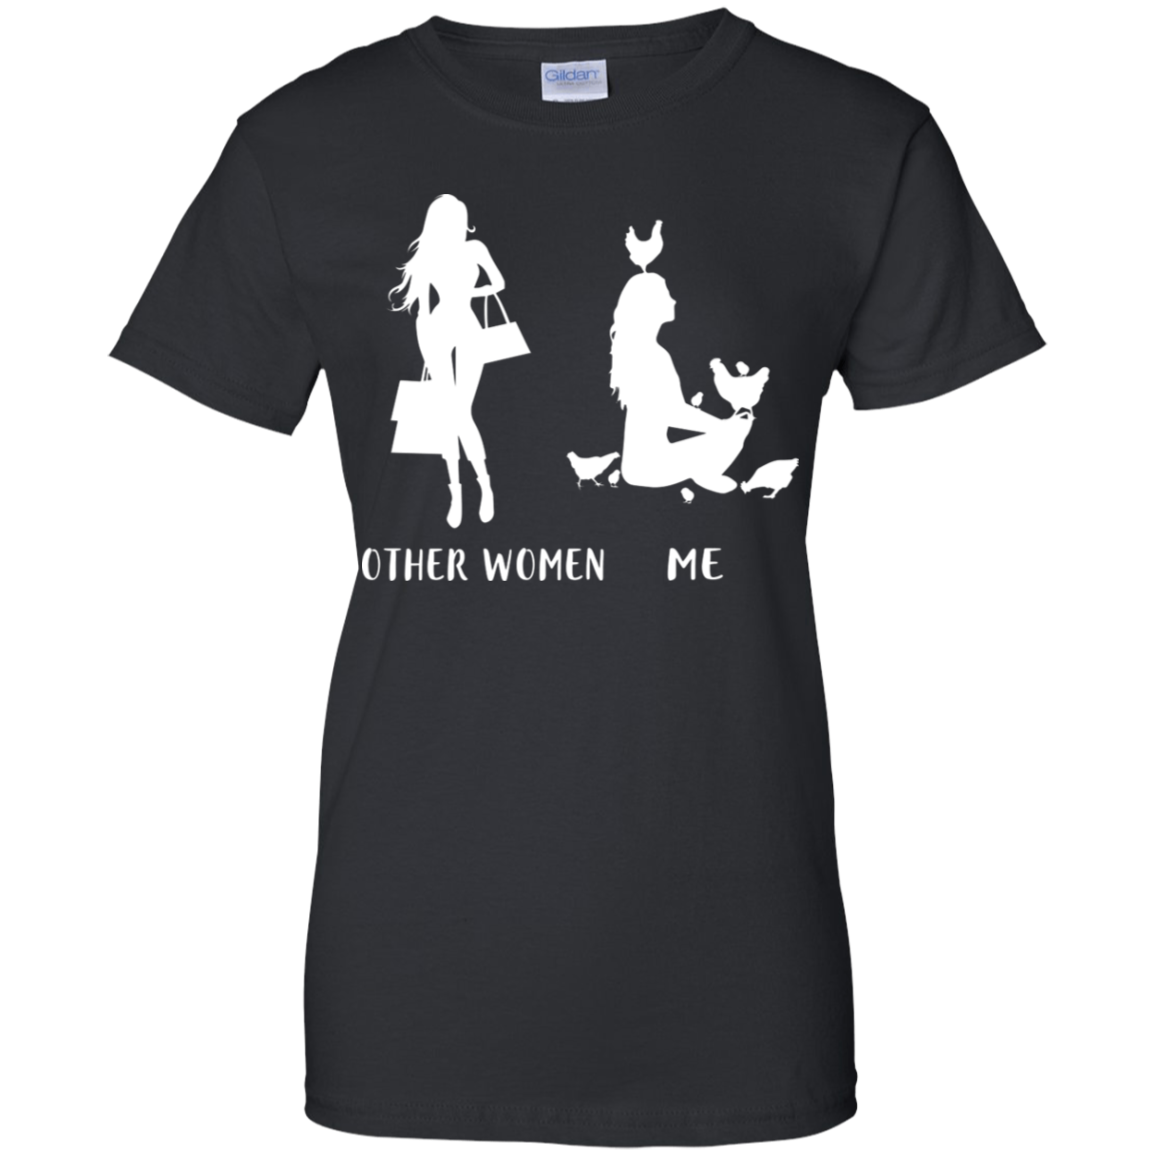 fd1818566e Other Women Love Shopping Me A Chicken Lady Funny T-Shirt Ladies  T-Shirt